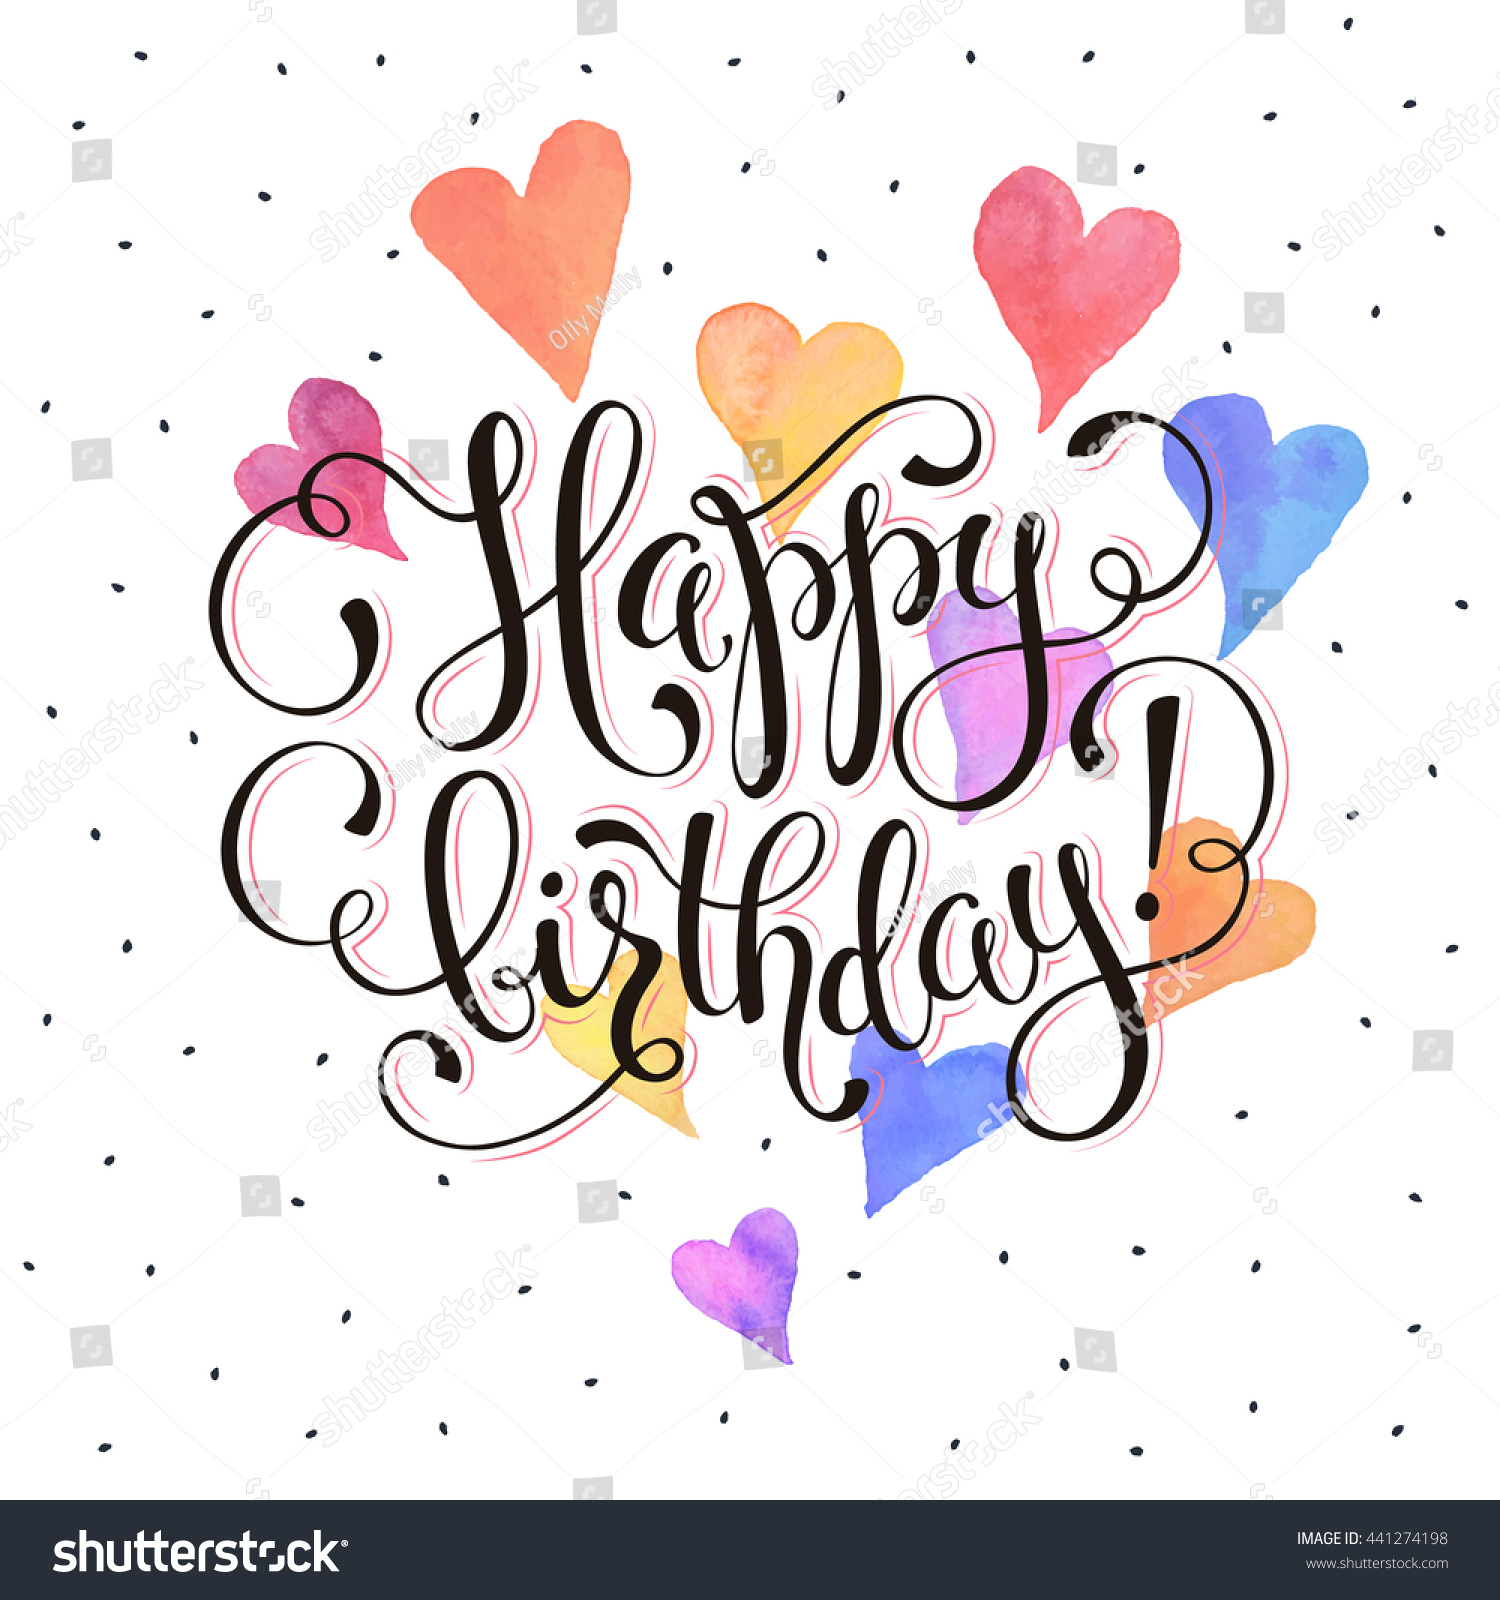 Happy birthday greeting card watercolor hearts stock vector happy birthday greeting card watercolor hearts on white background with text birthday wording vector kristyandbryce Gallery